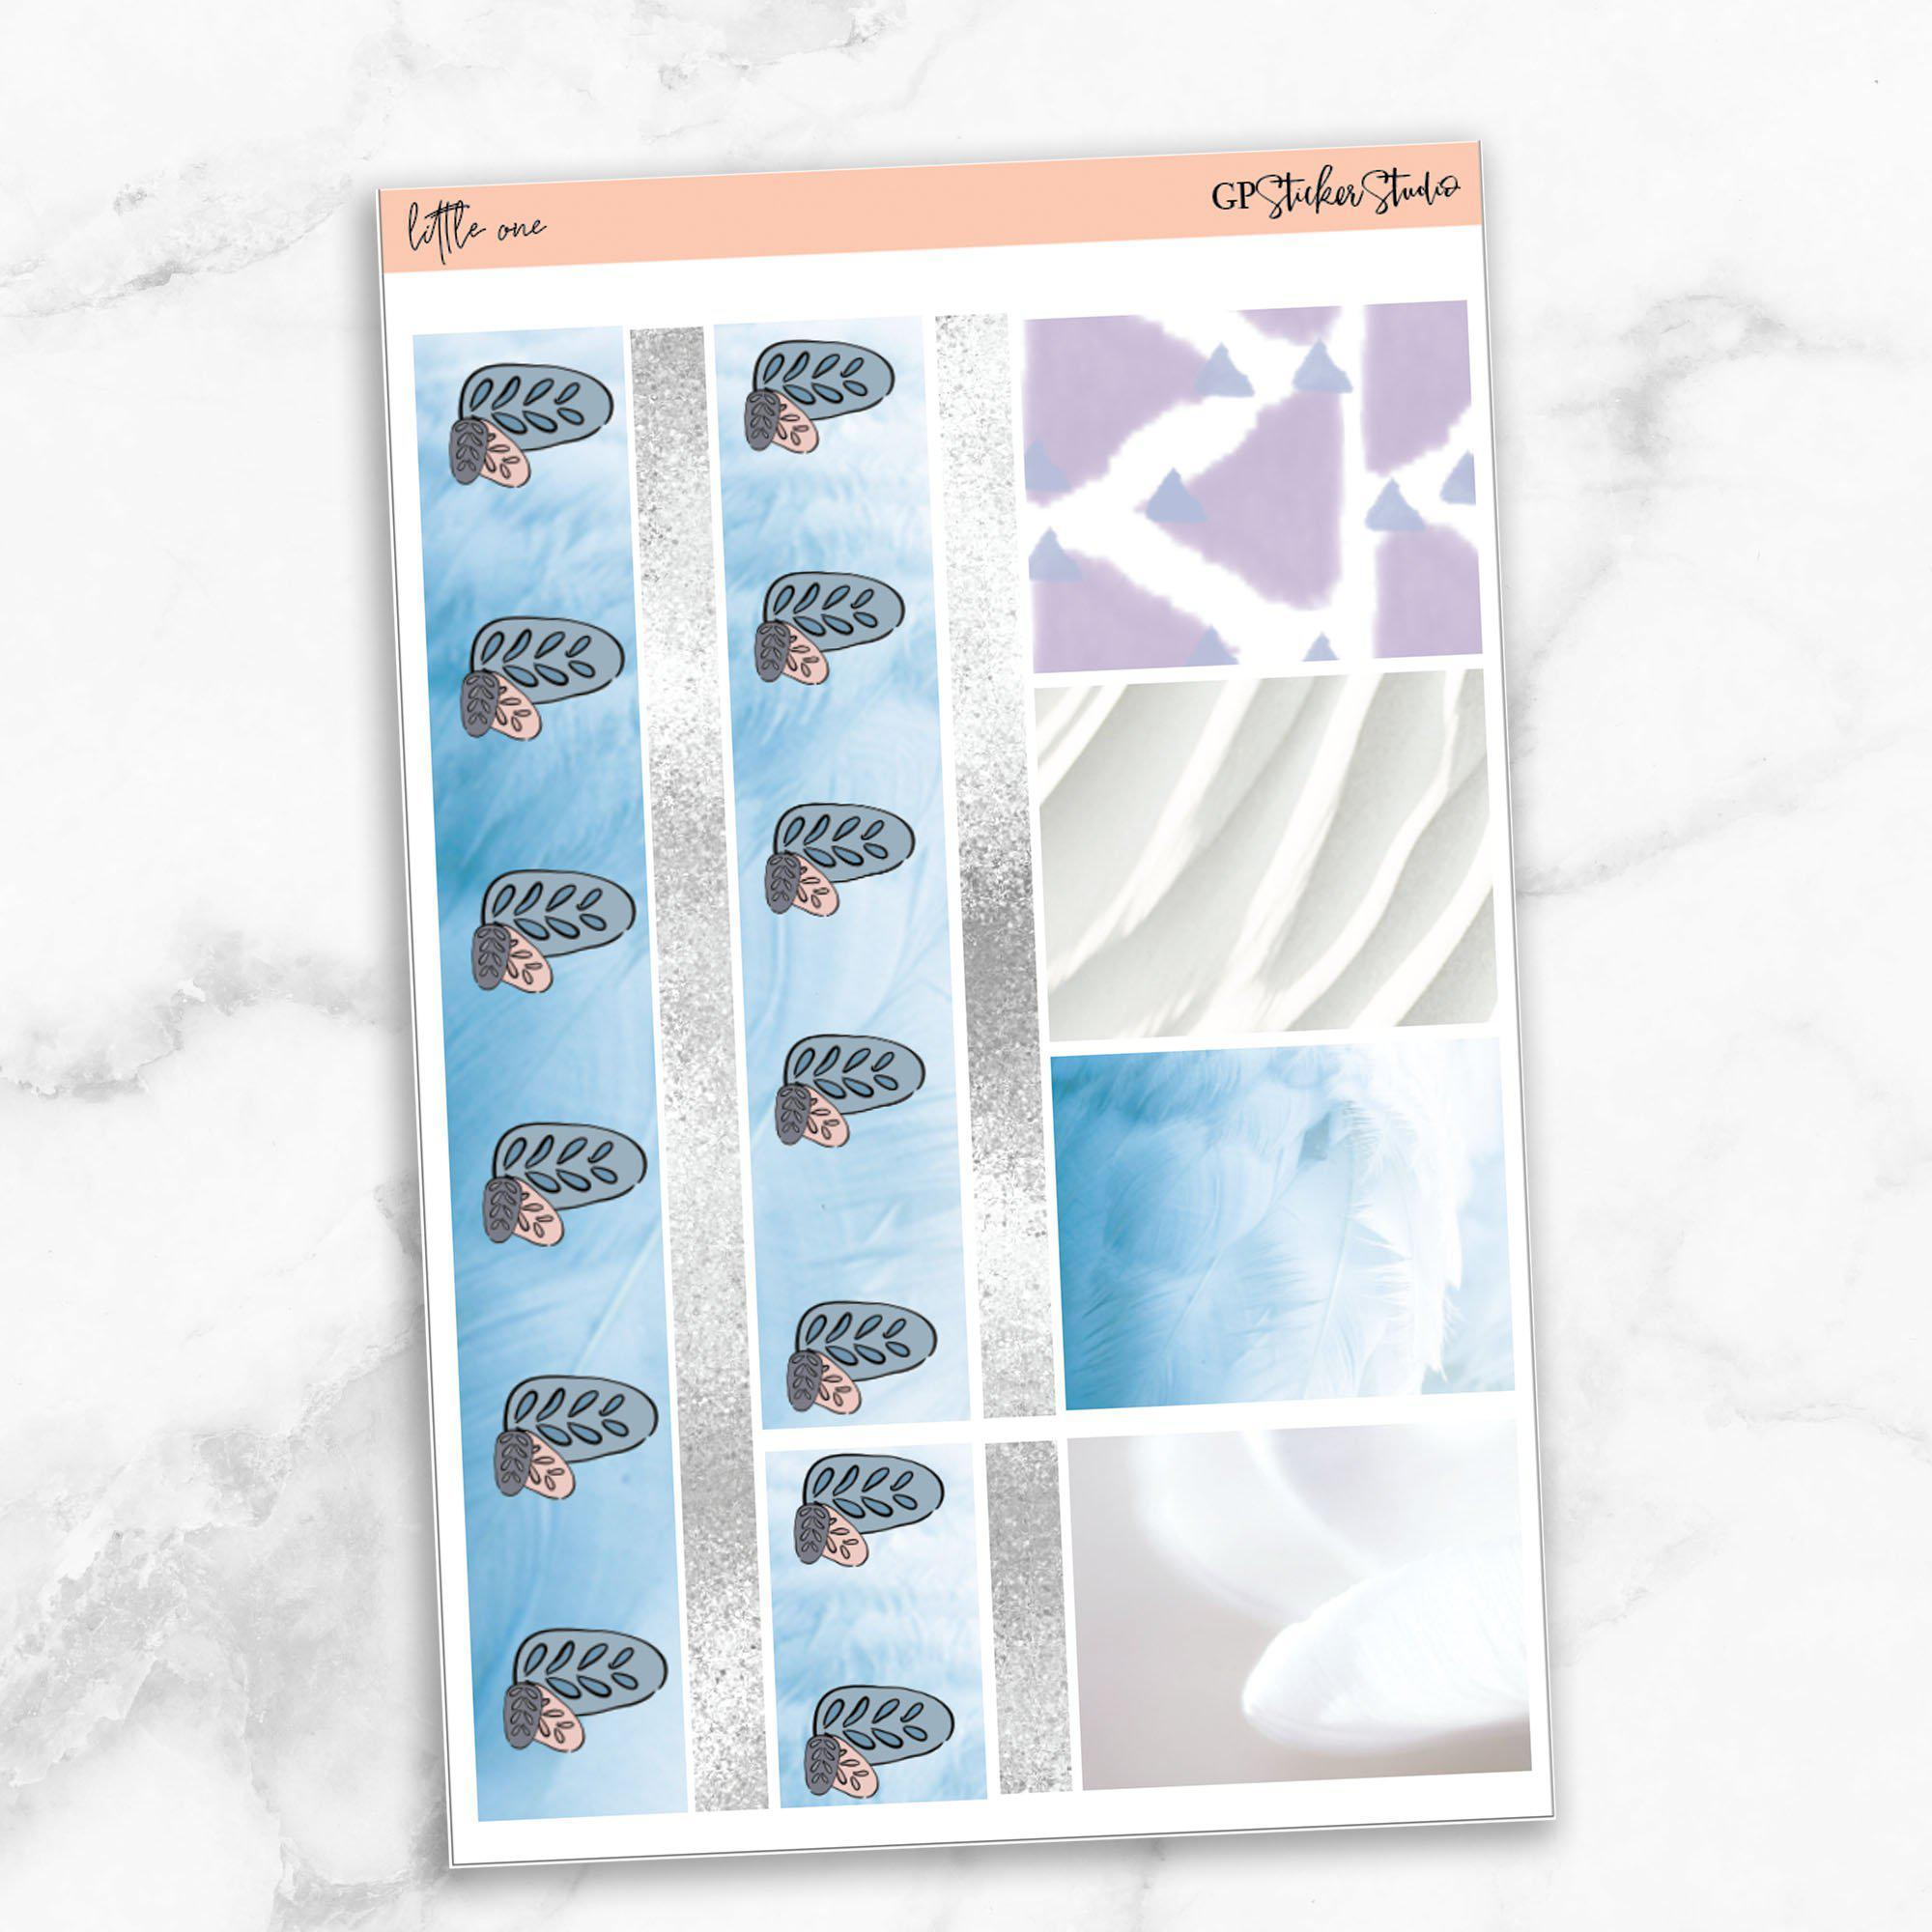 LITTLE ONE Washi Sheet Stickers-The GP Studio